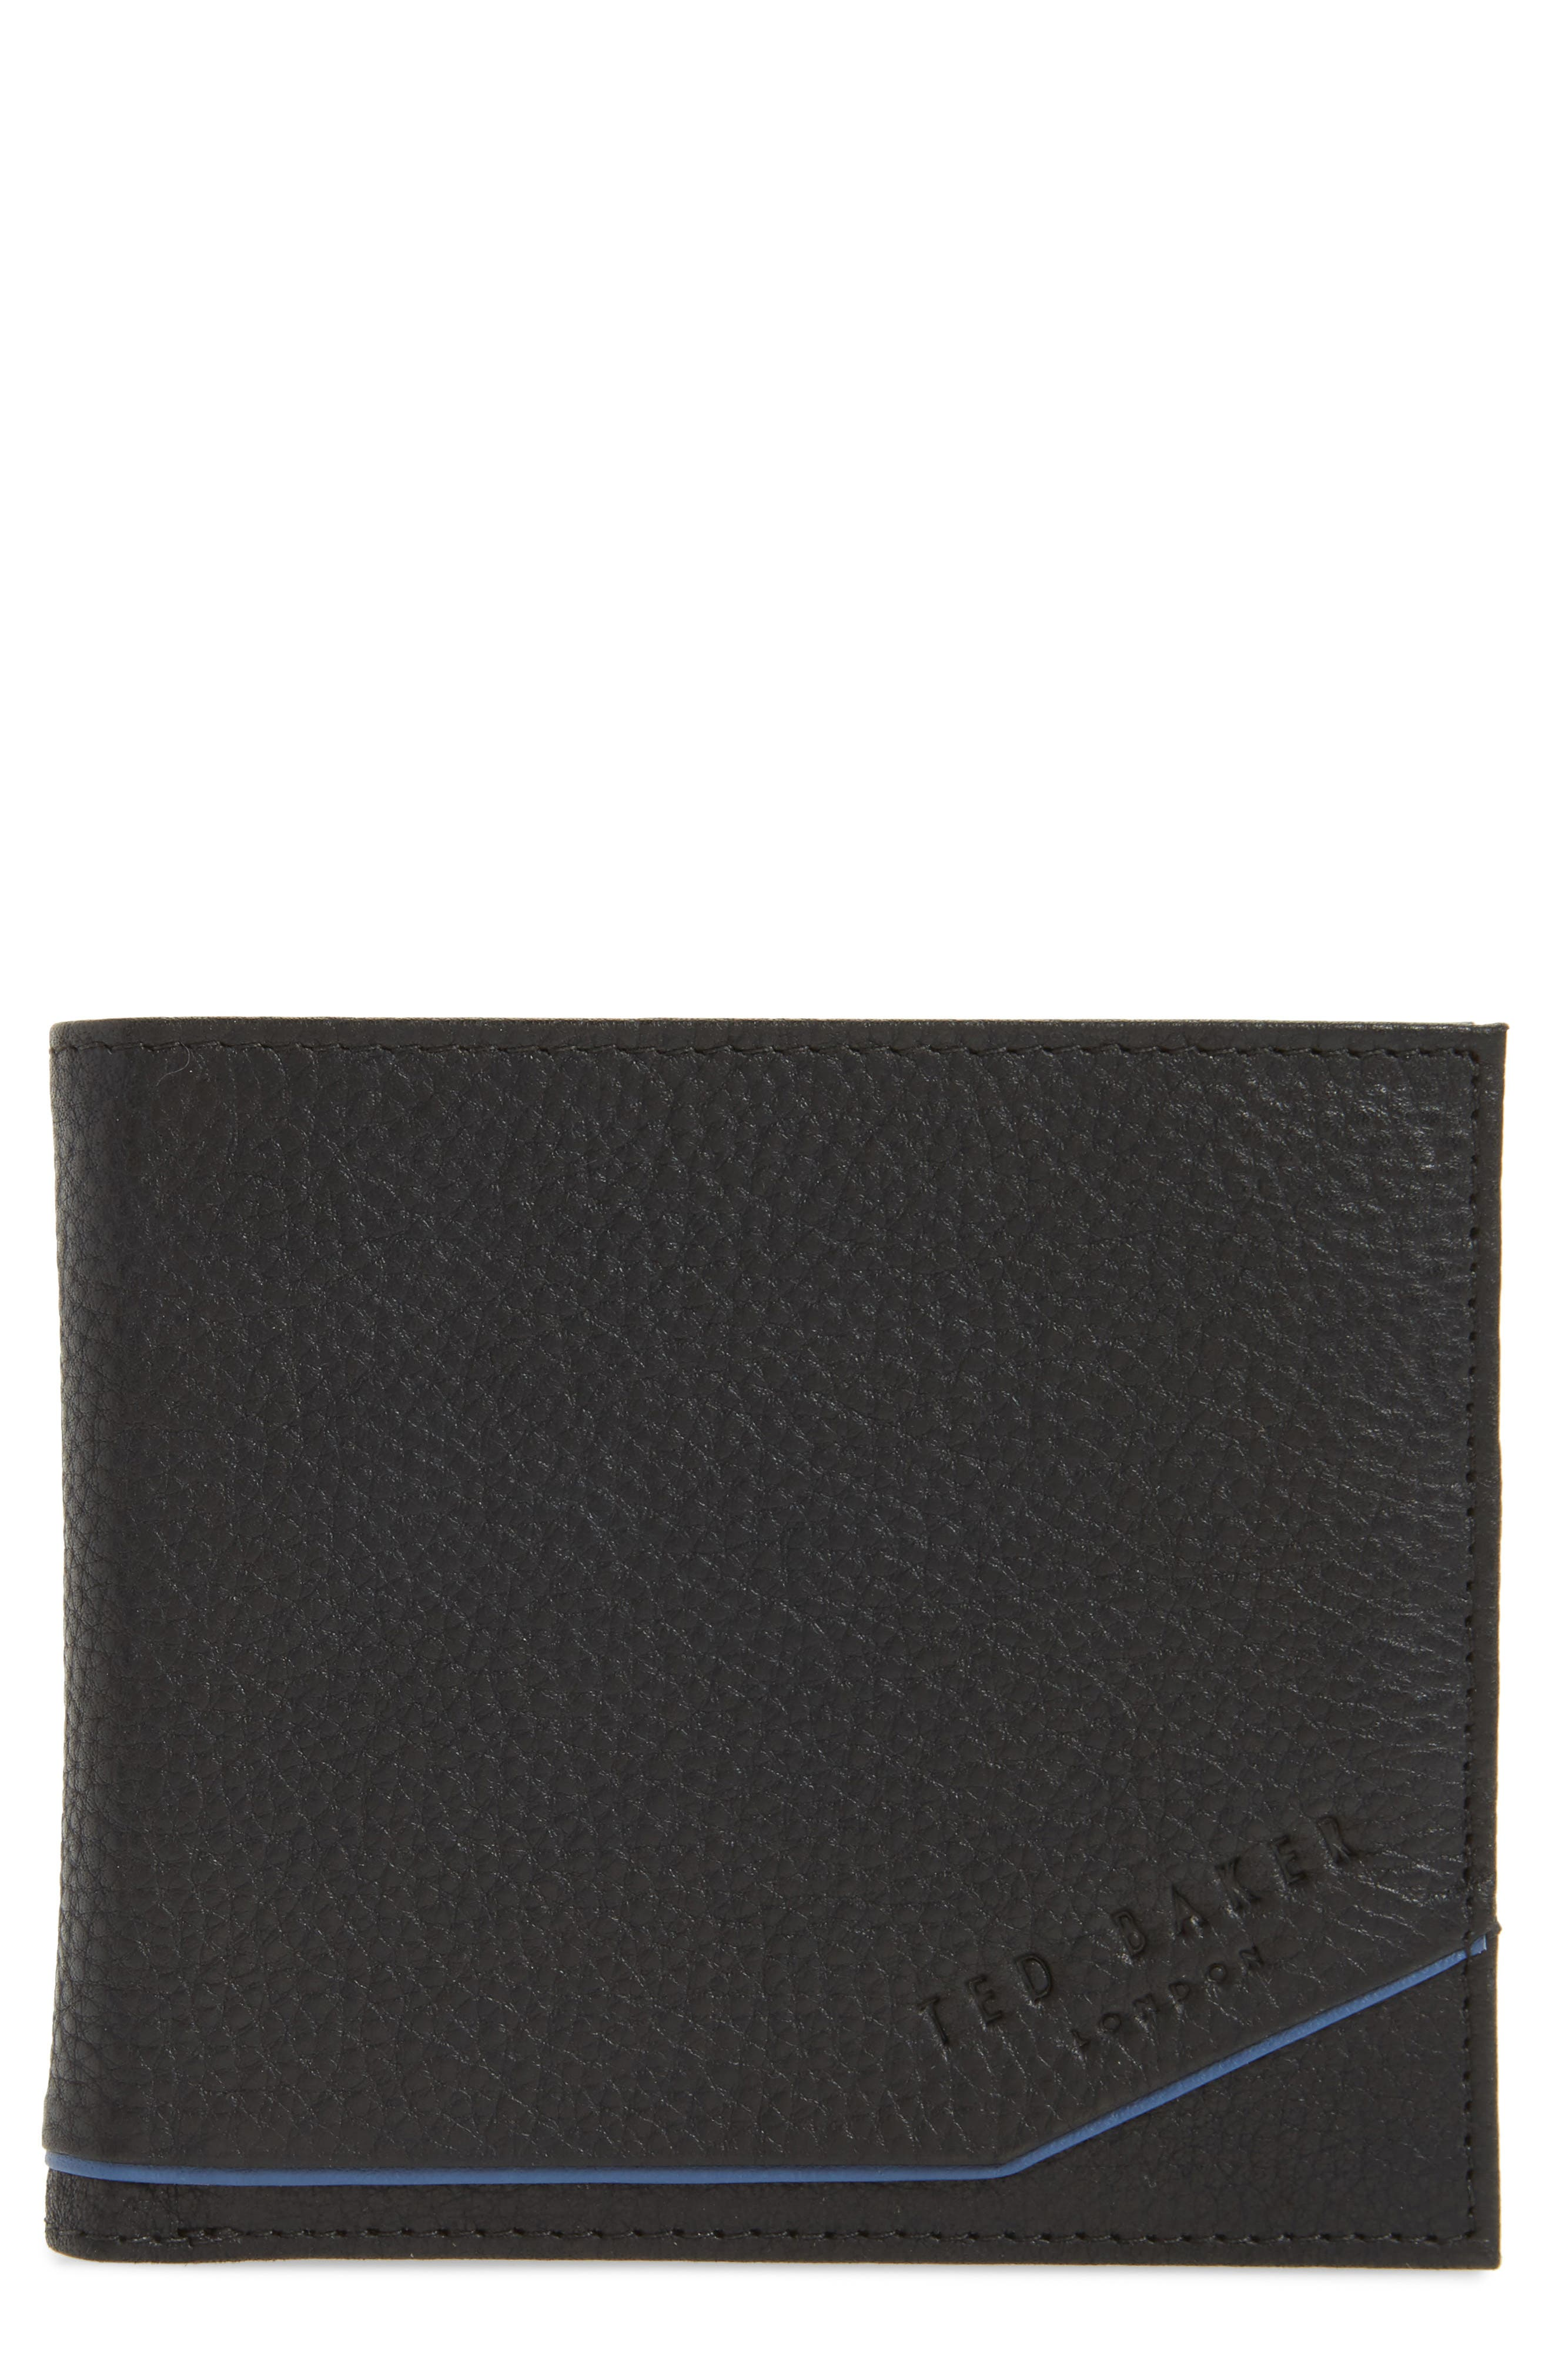 Persia Leather Wallet,                         Main,                         color, 001